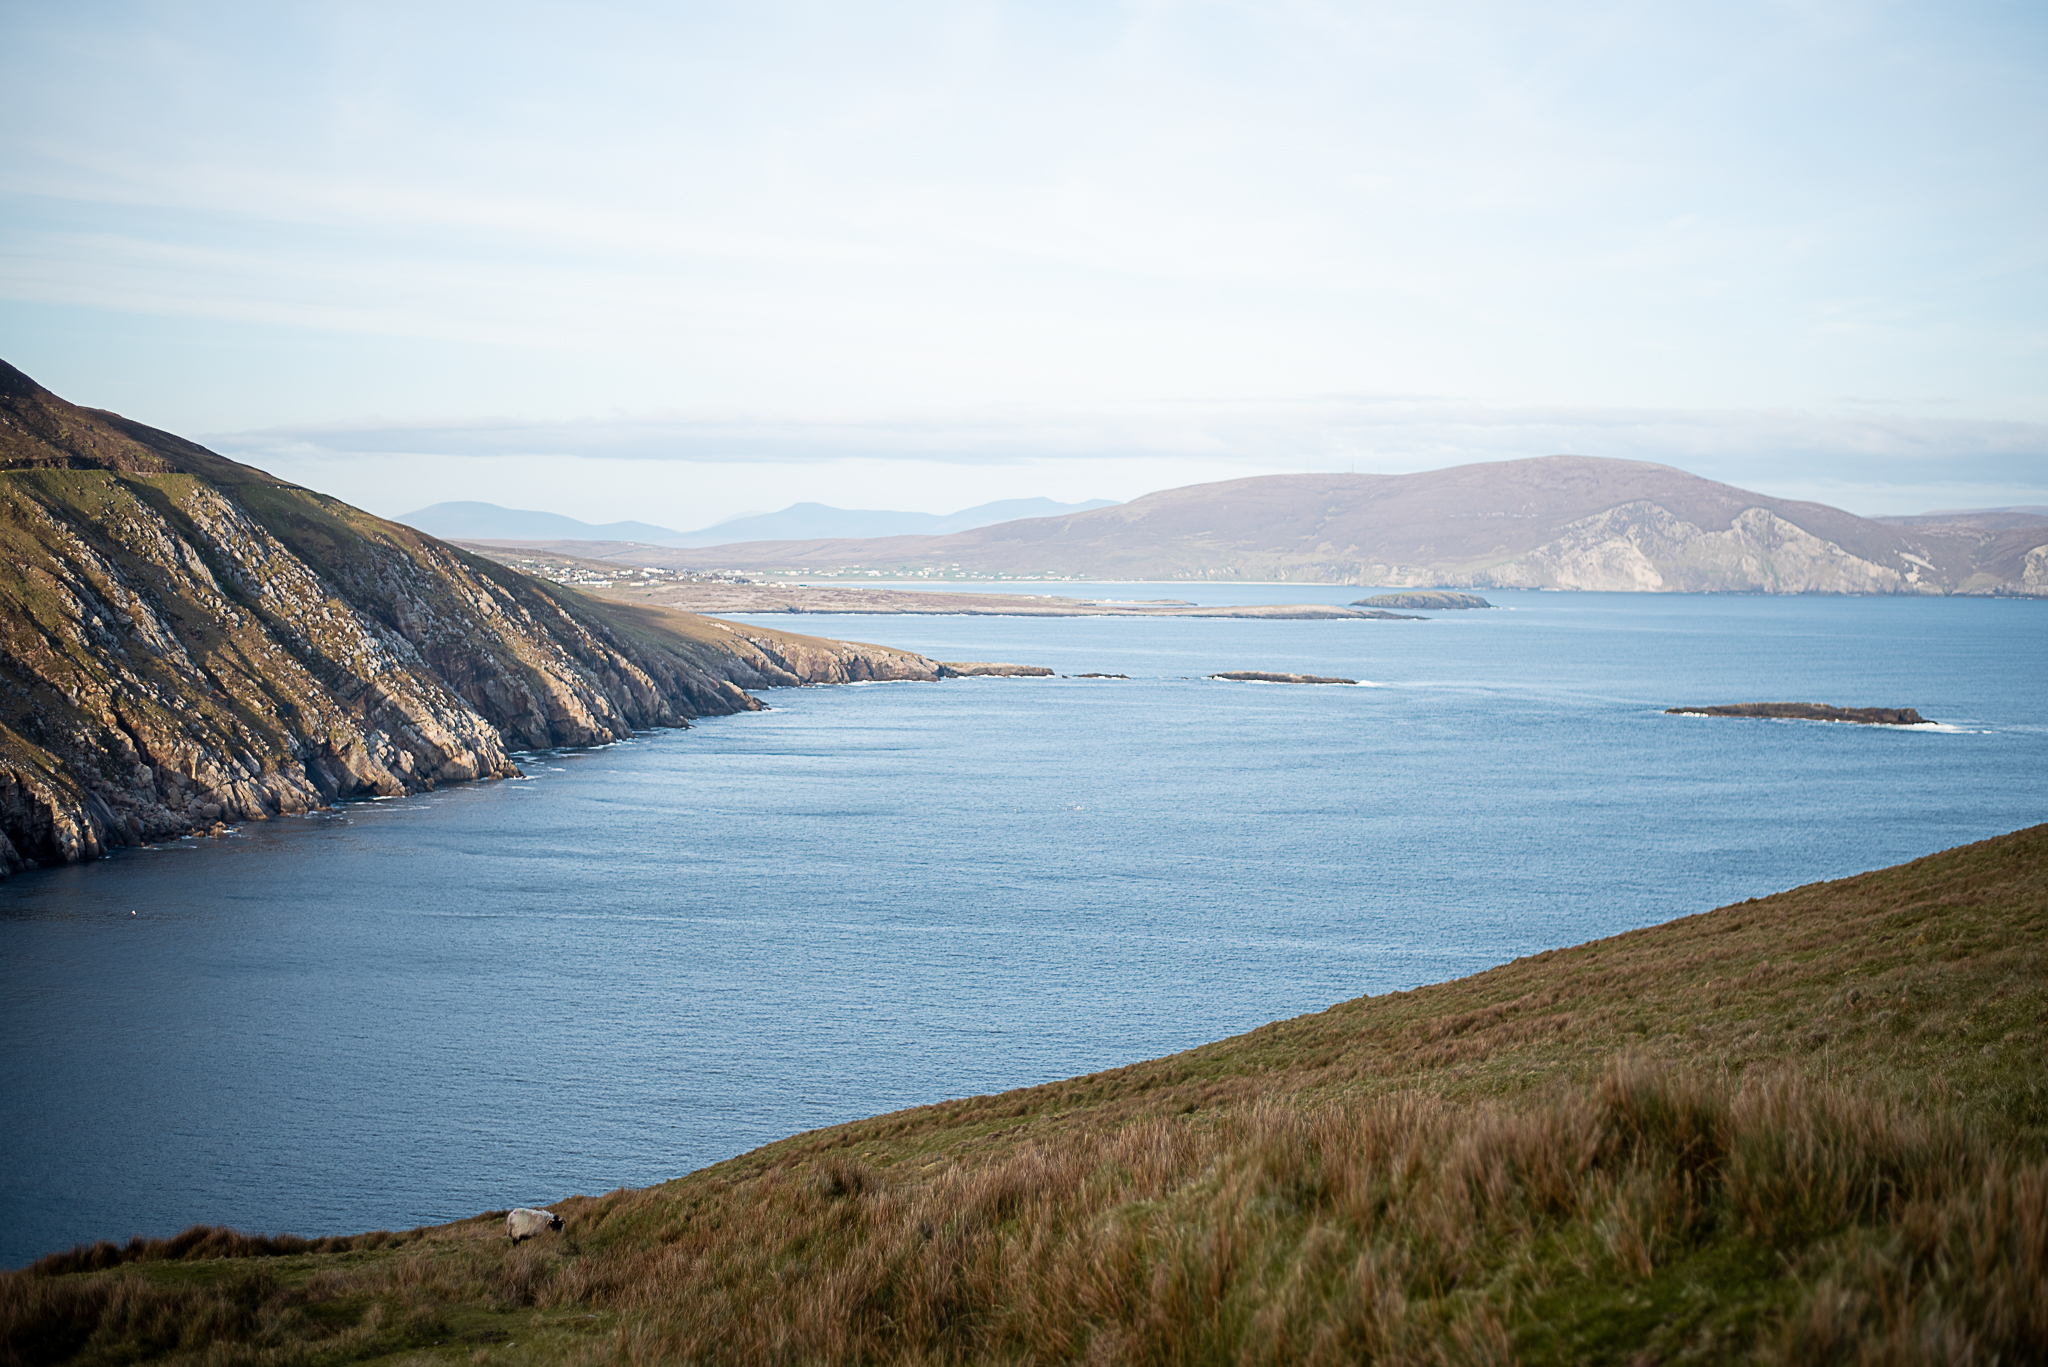 tinyboots, wild atlantic way, achill, ocean, cliffs, coastline, ireland, keem bay